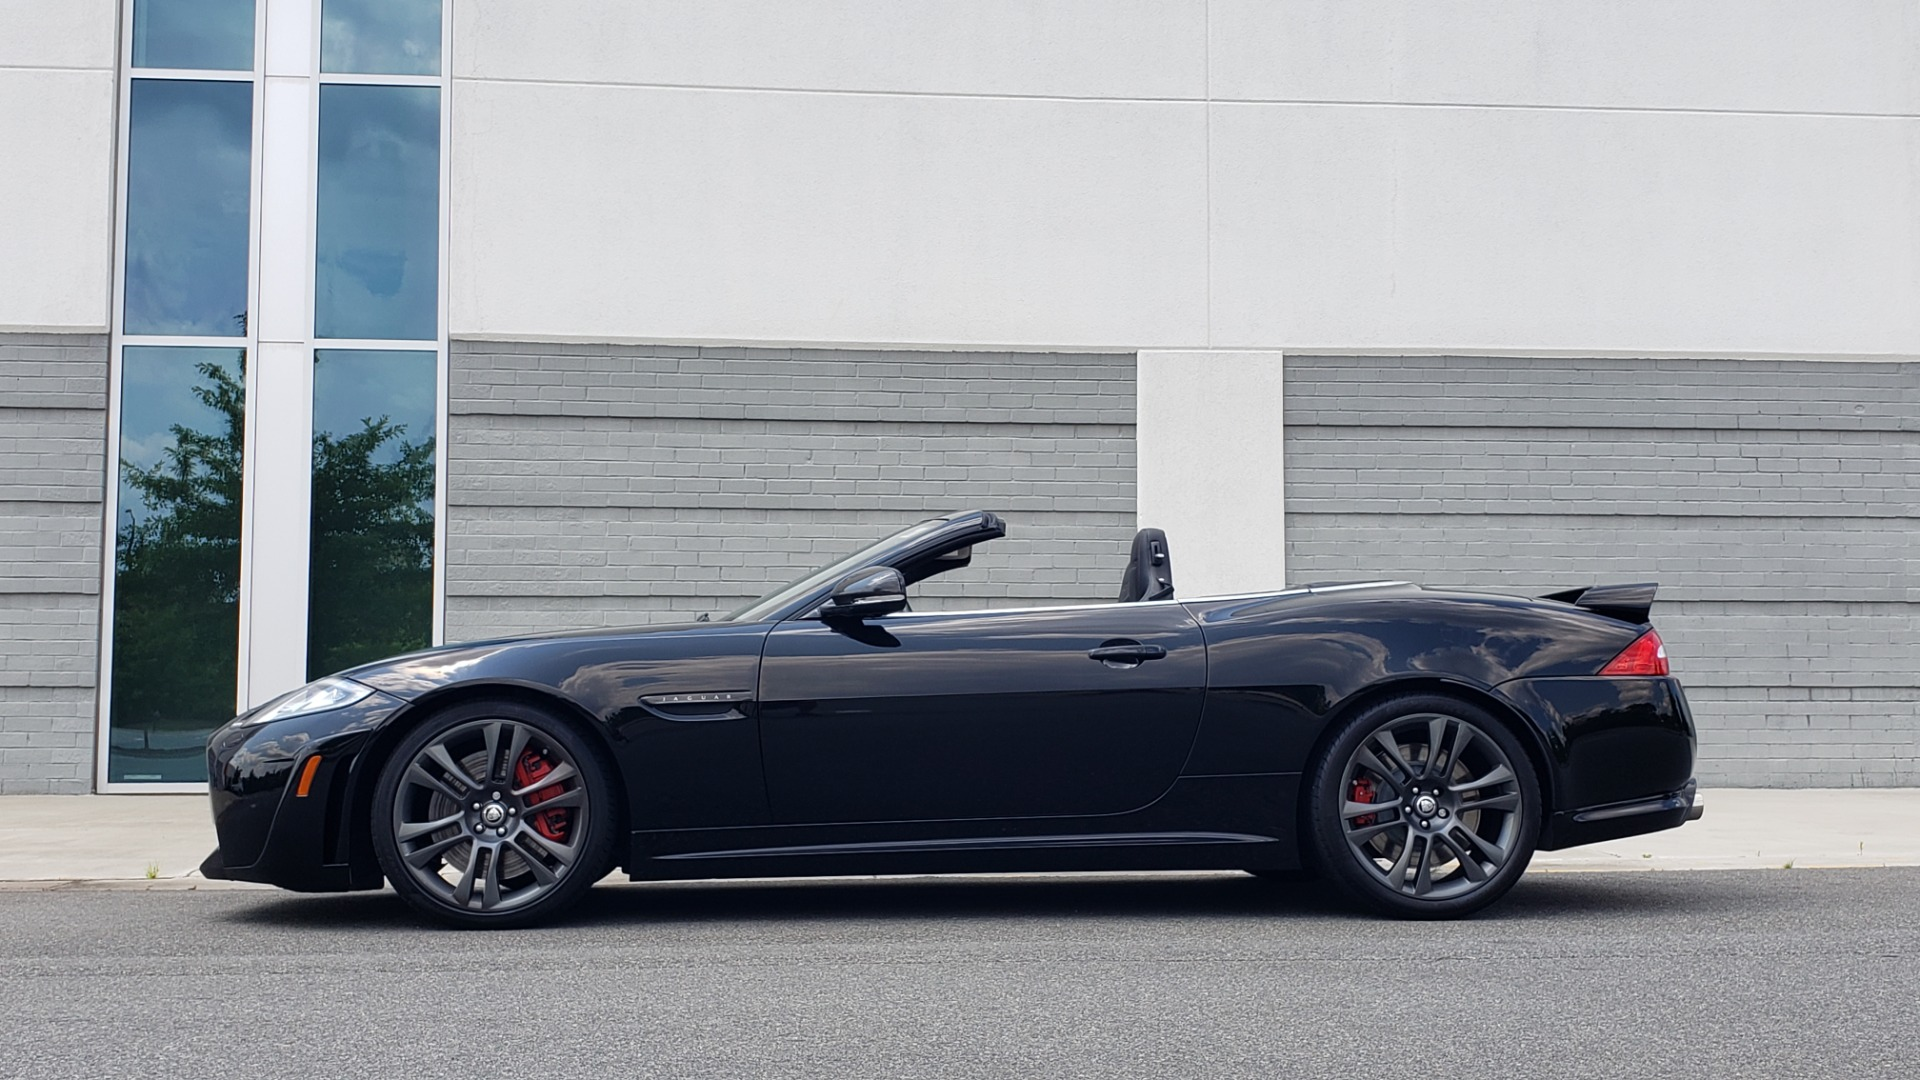 Used 2013 Jaguar XK R-S CONVERTIBLE / SC 5.0L V8 (550HP) / ZF 6-SPD AUTO / NAV / REARVIEW for sale $74,995 at Formula Imports in Charlotte NC 28227 7